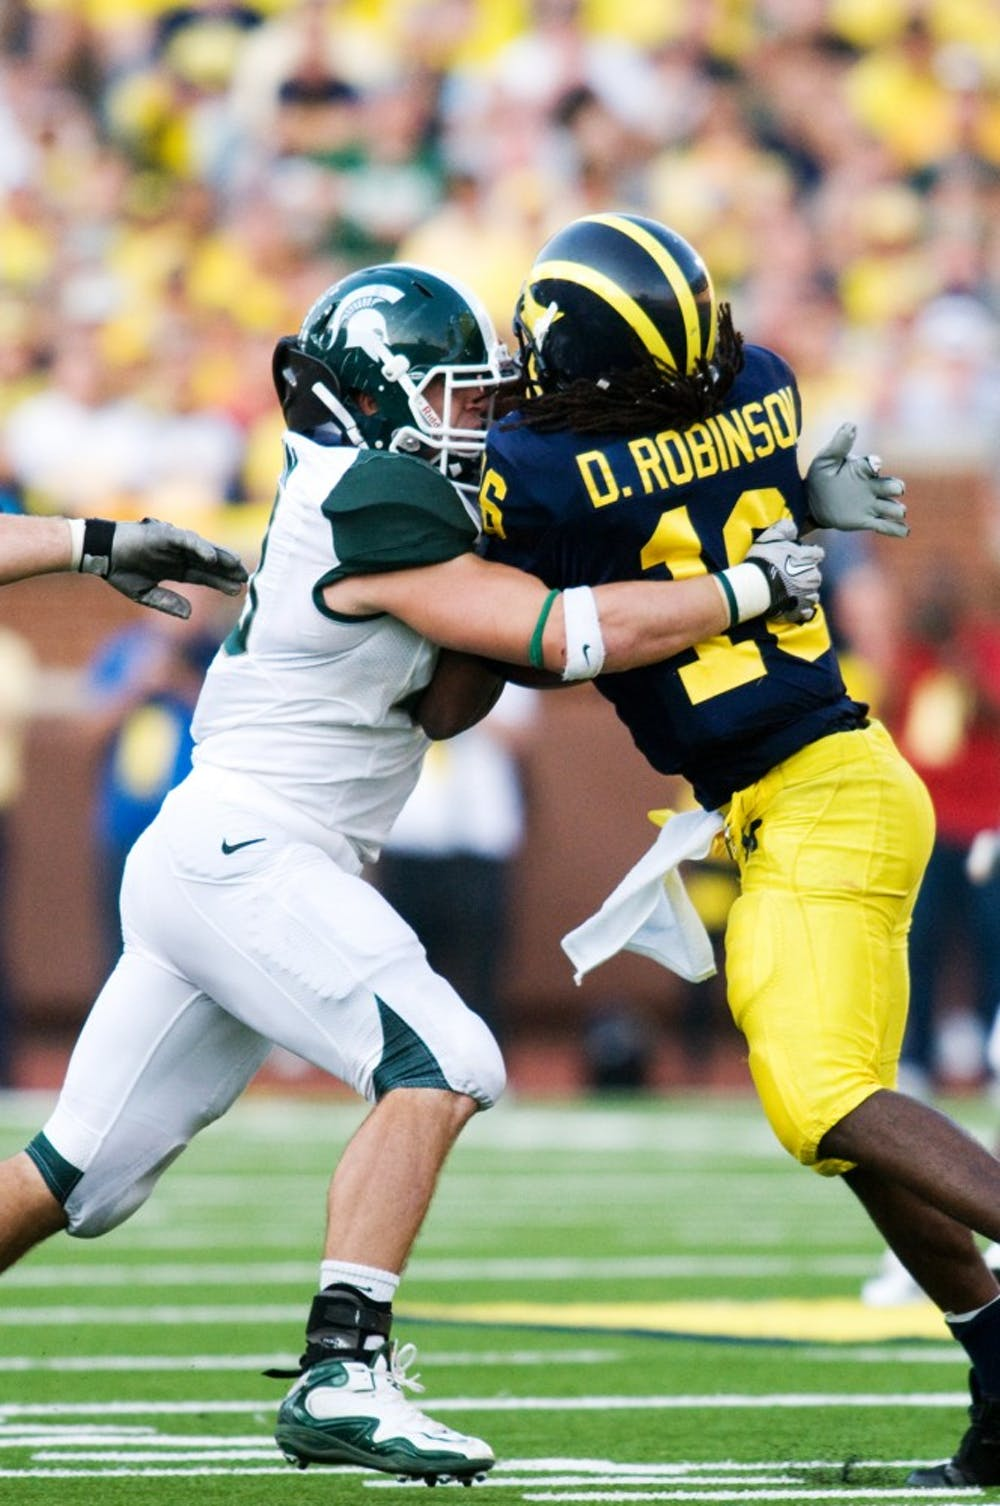 Senior linebacker Eric Gordon tackles Michigan quarterback Denard Robinson as he attempts to scramble Saturday afternoon at Michigan Stadium in Ann Arbor. Robinson had a season low of only 86 yards rushing against Spartan defense. Sam Mikalonis/The State News